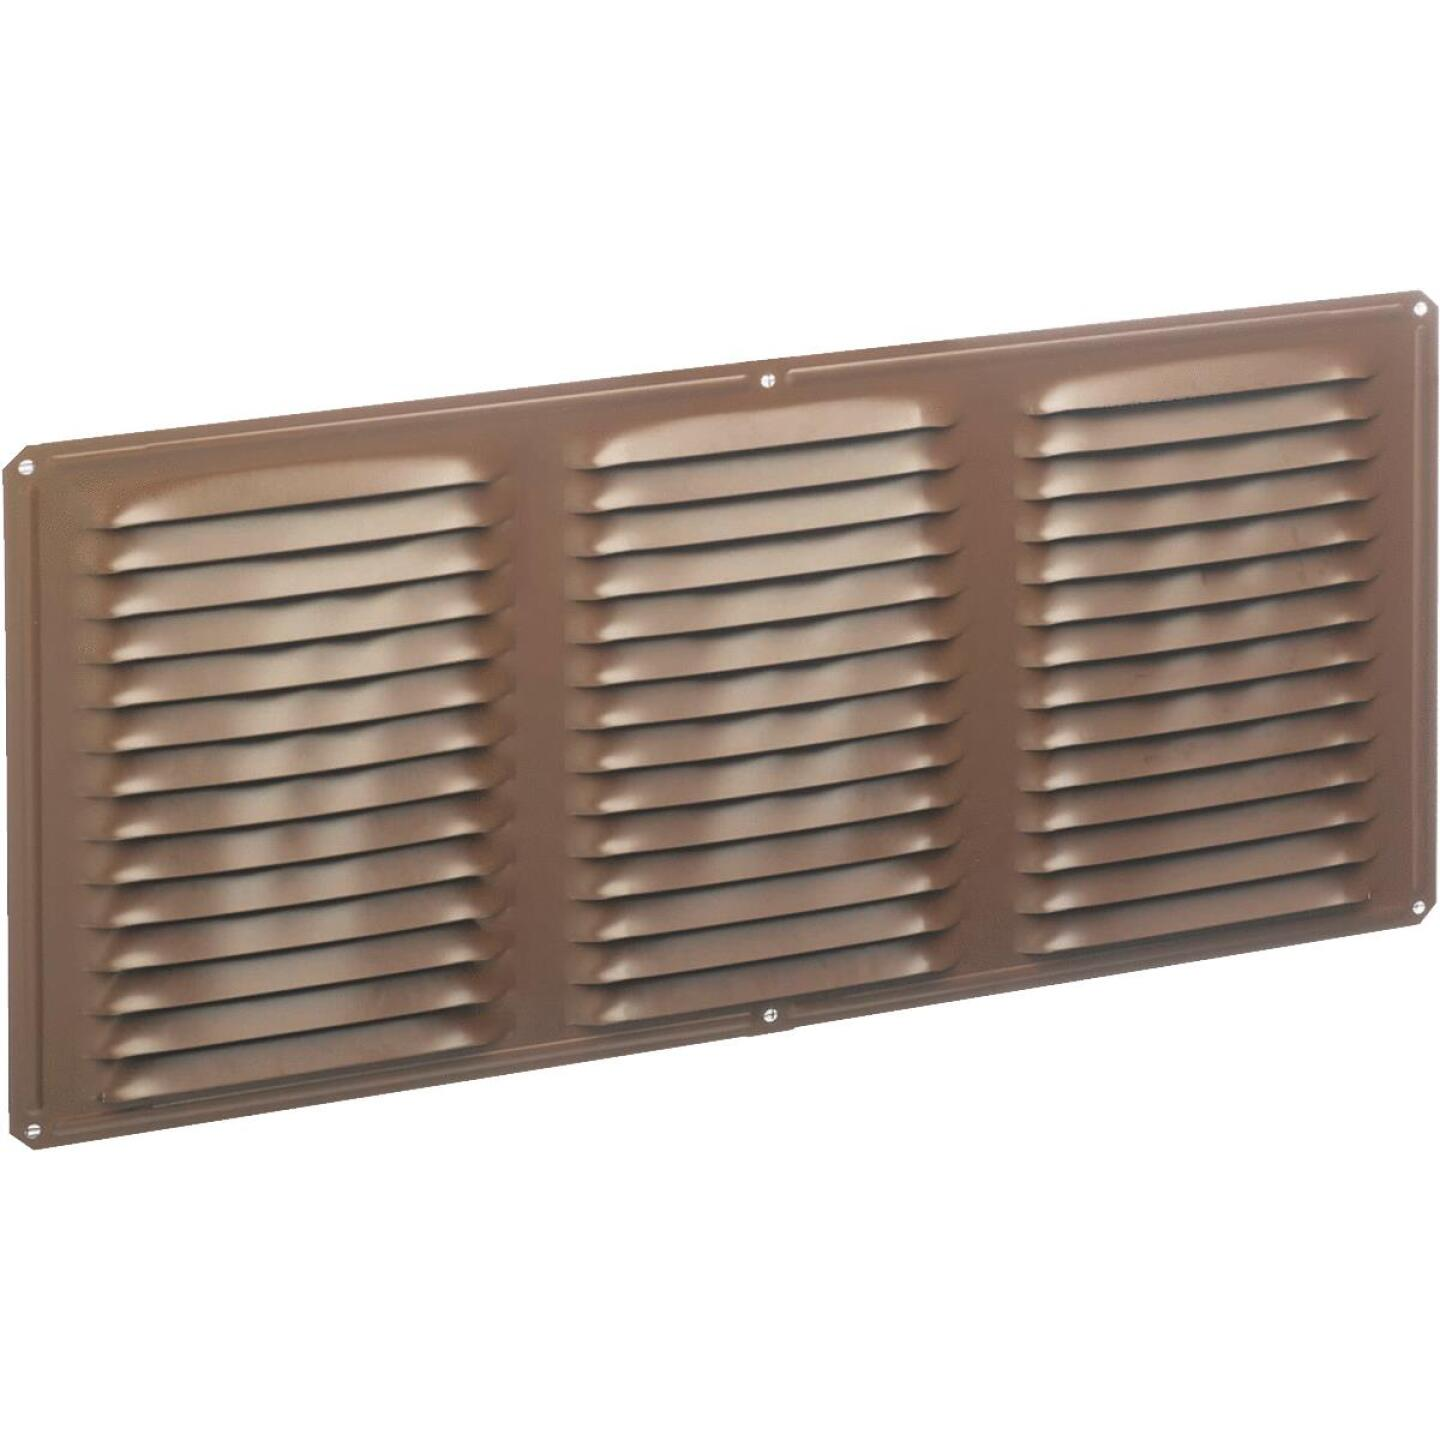 Air Vent 16 In. x 6 In. Brown Aluminum Under Eave Vent Image 1